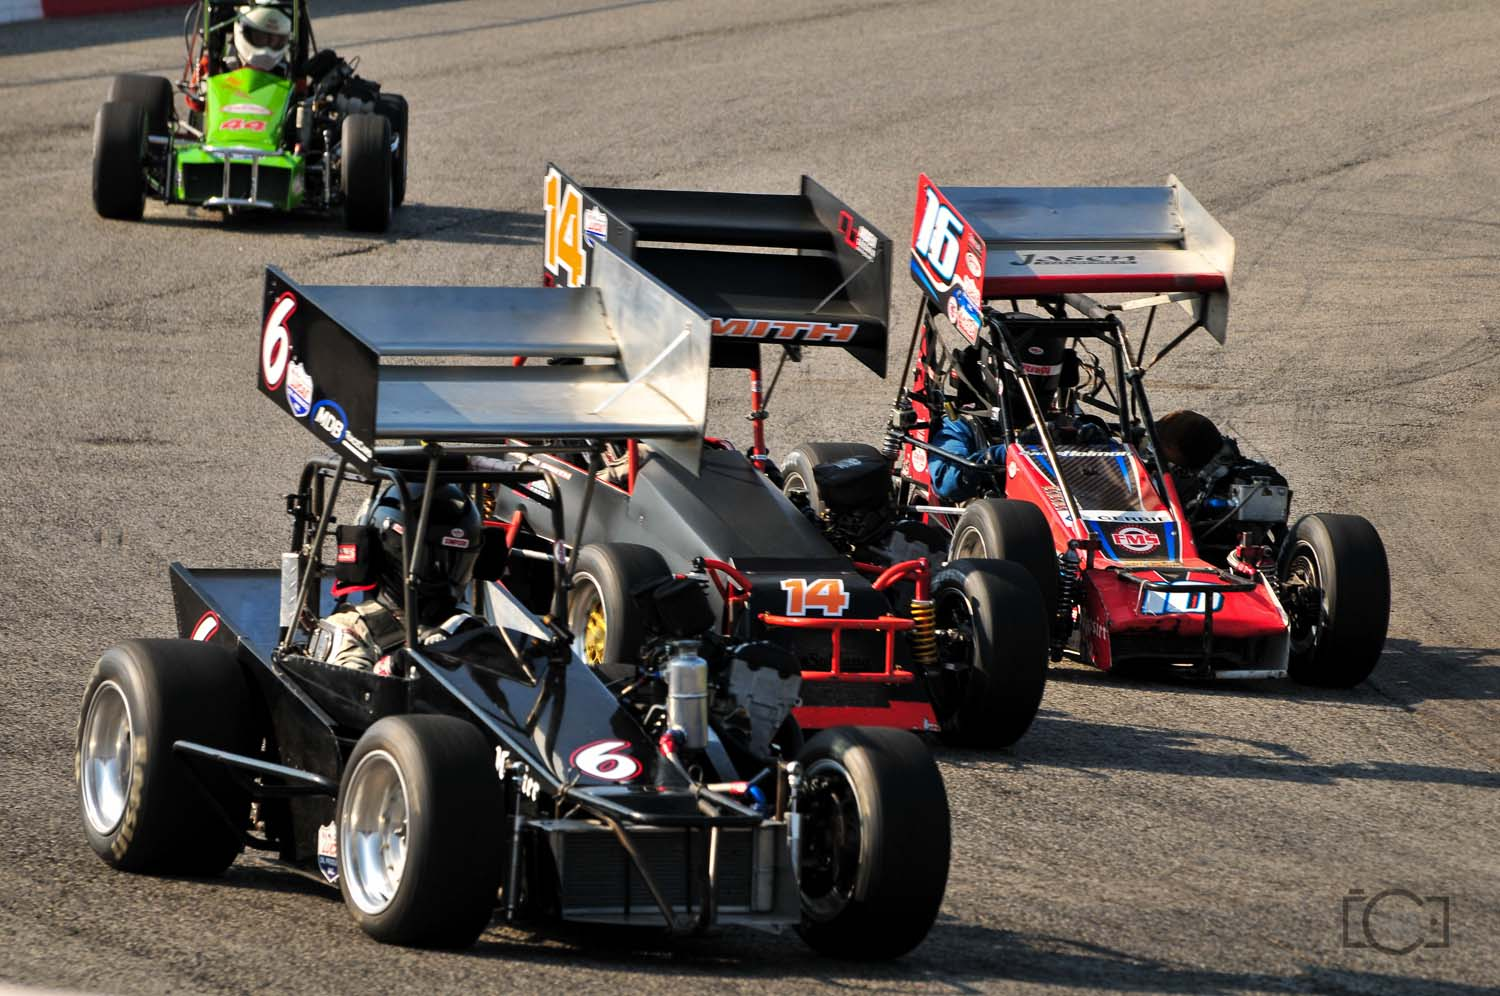 Going three wide during the heat race!